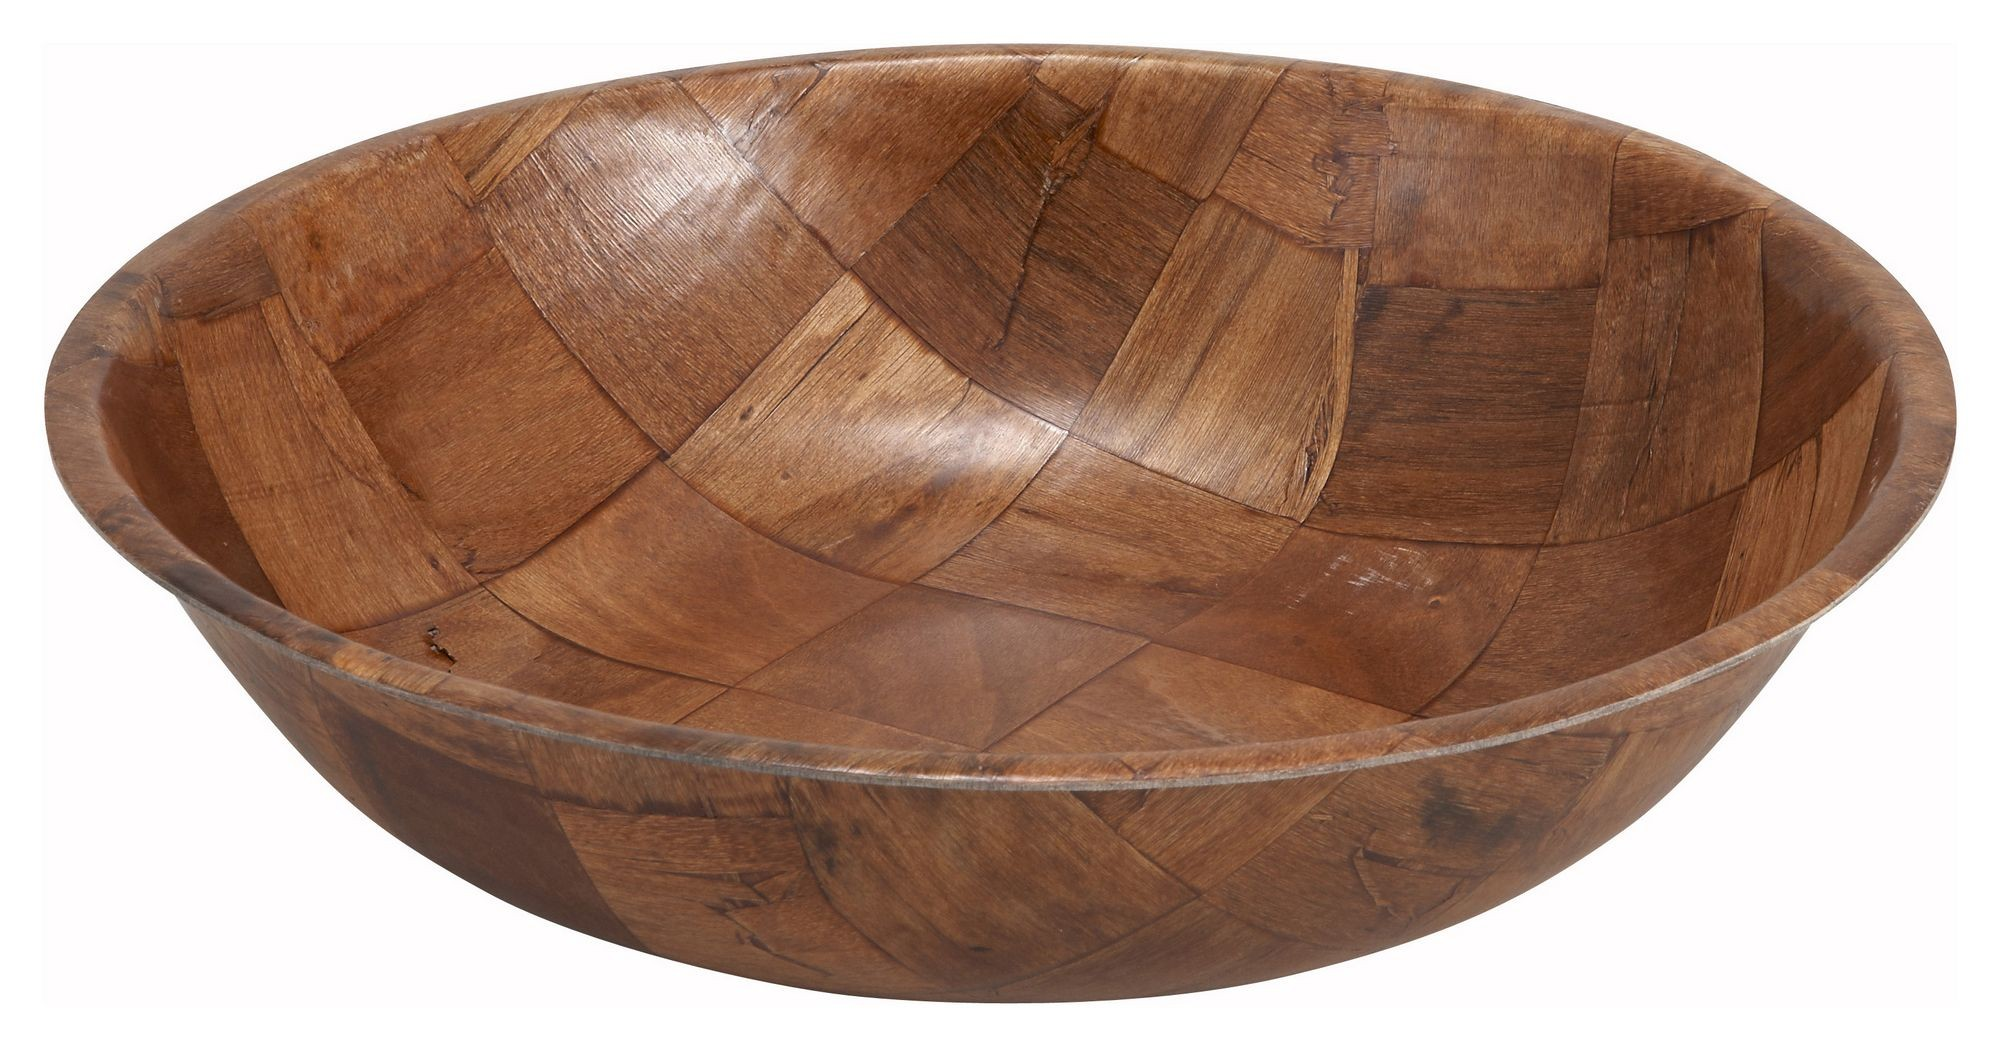 Winco wwb-8 Round Woven Wood Salad Bowl 8""